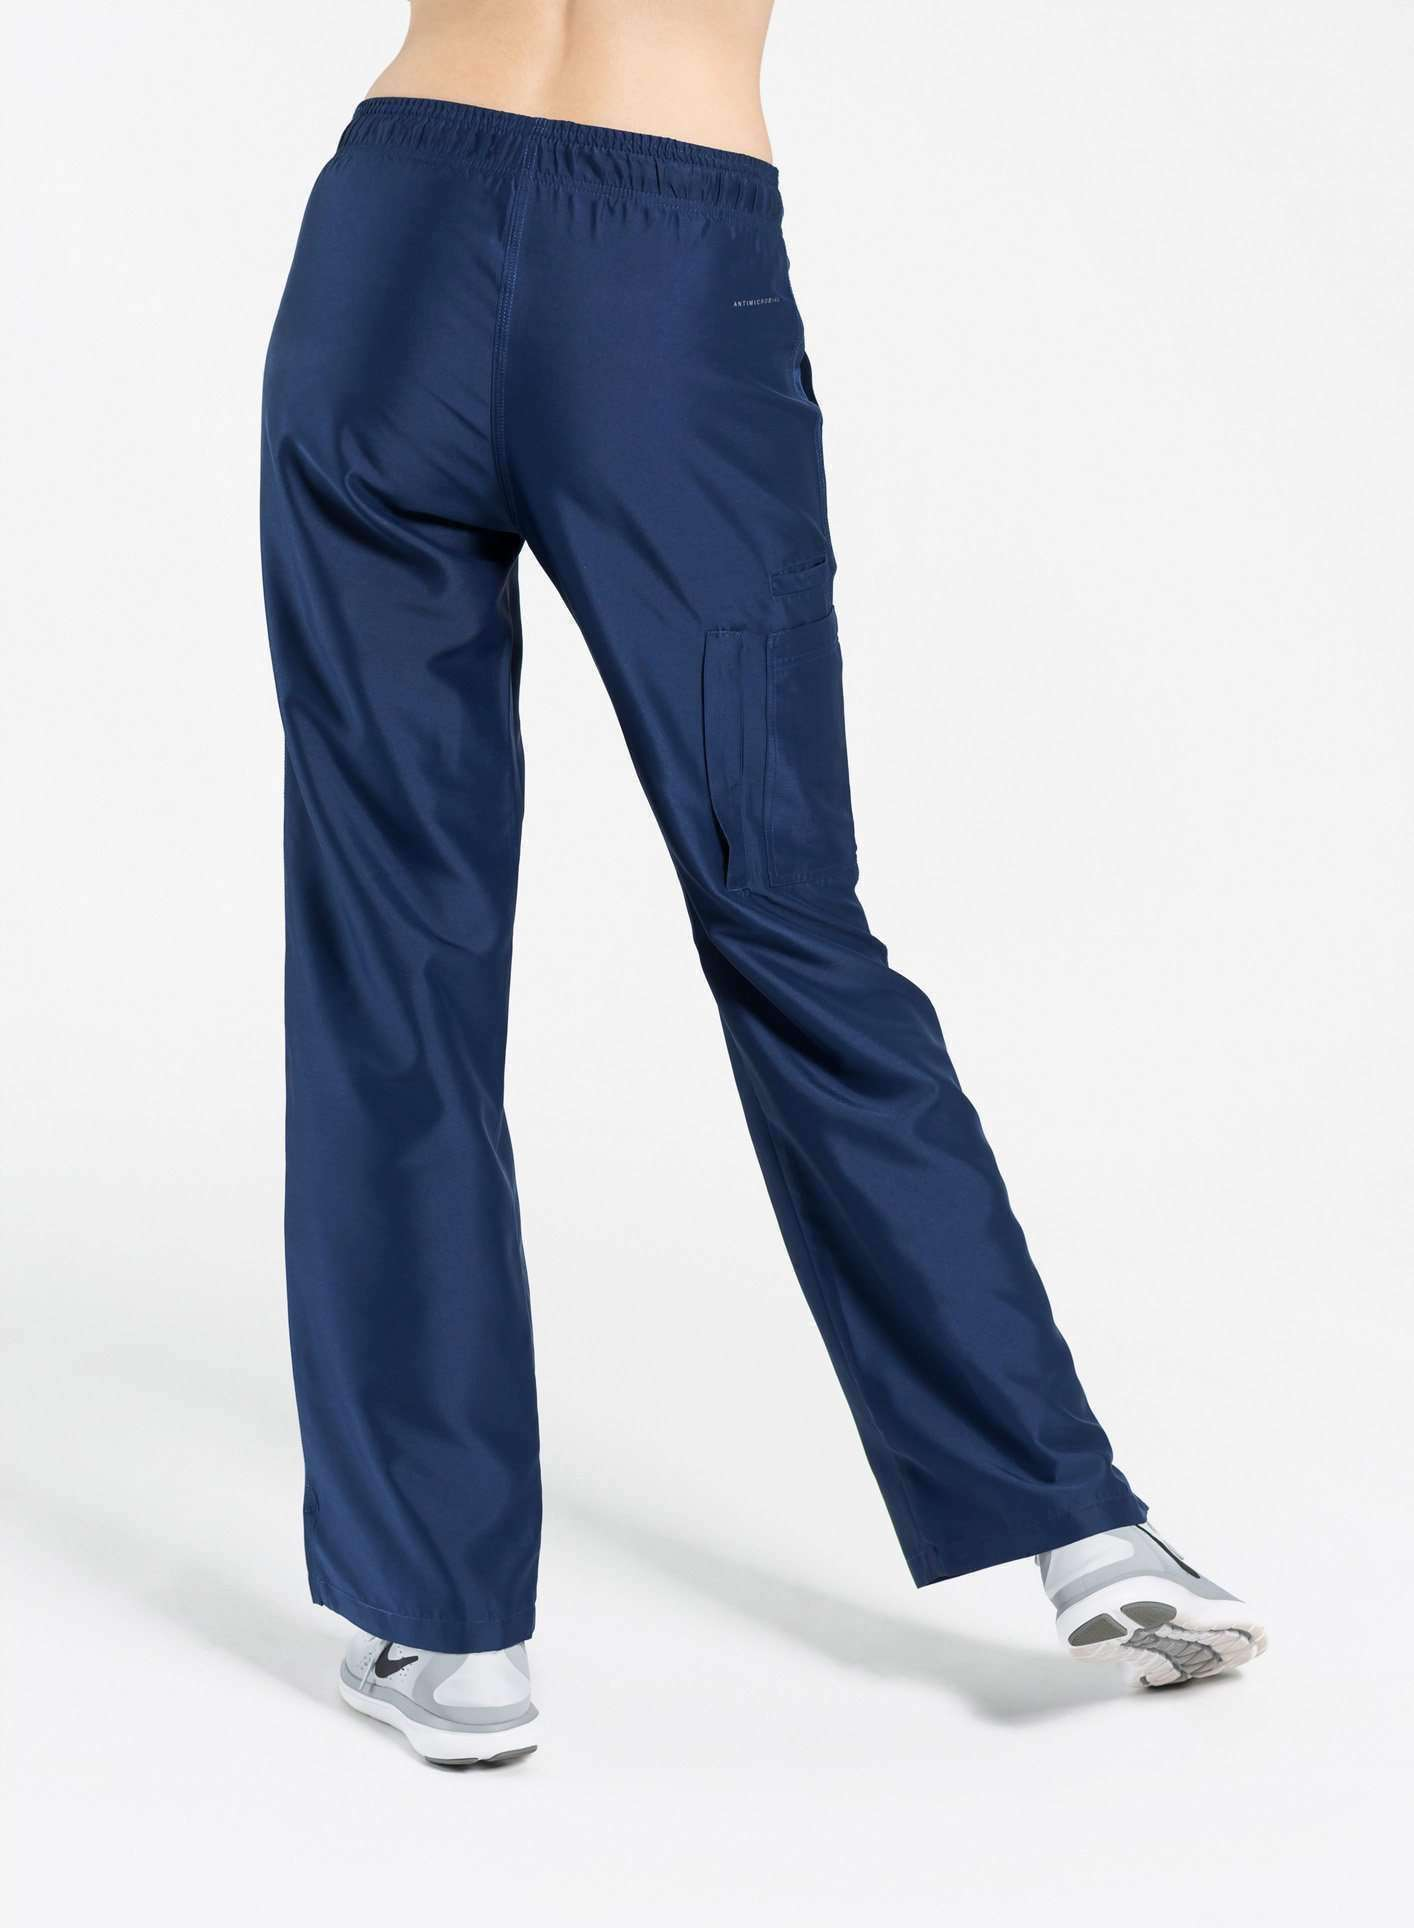 womens Elements cargo pocket straight leg scrub pants navy blue